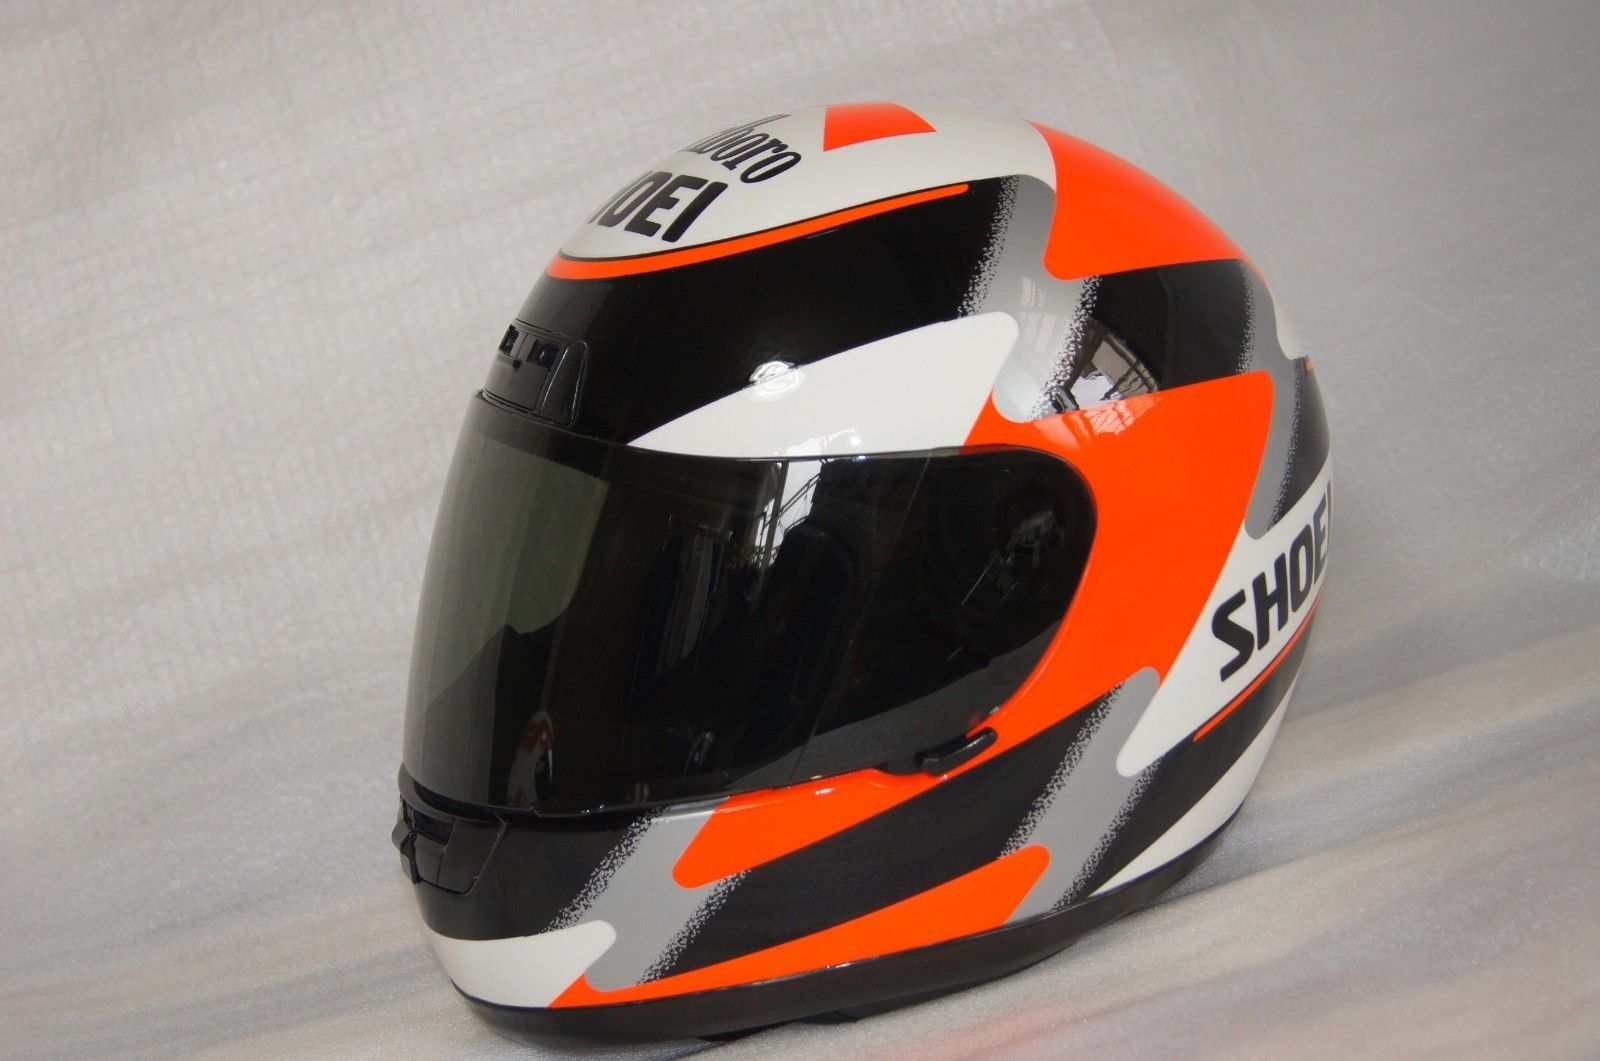 Shoei Helmet Rainey Classic Motorcycle Racing Racing Helmets